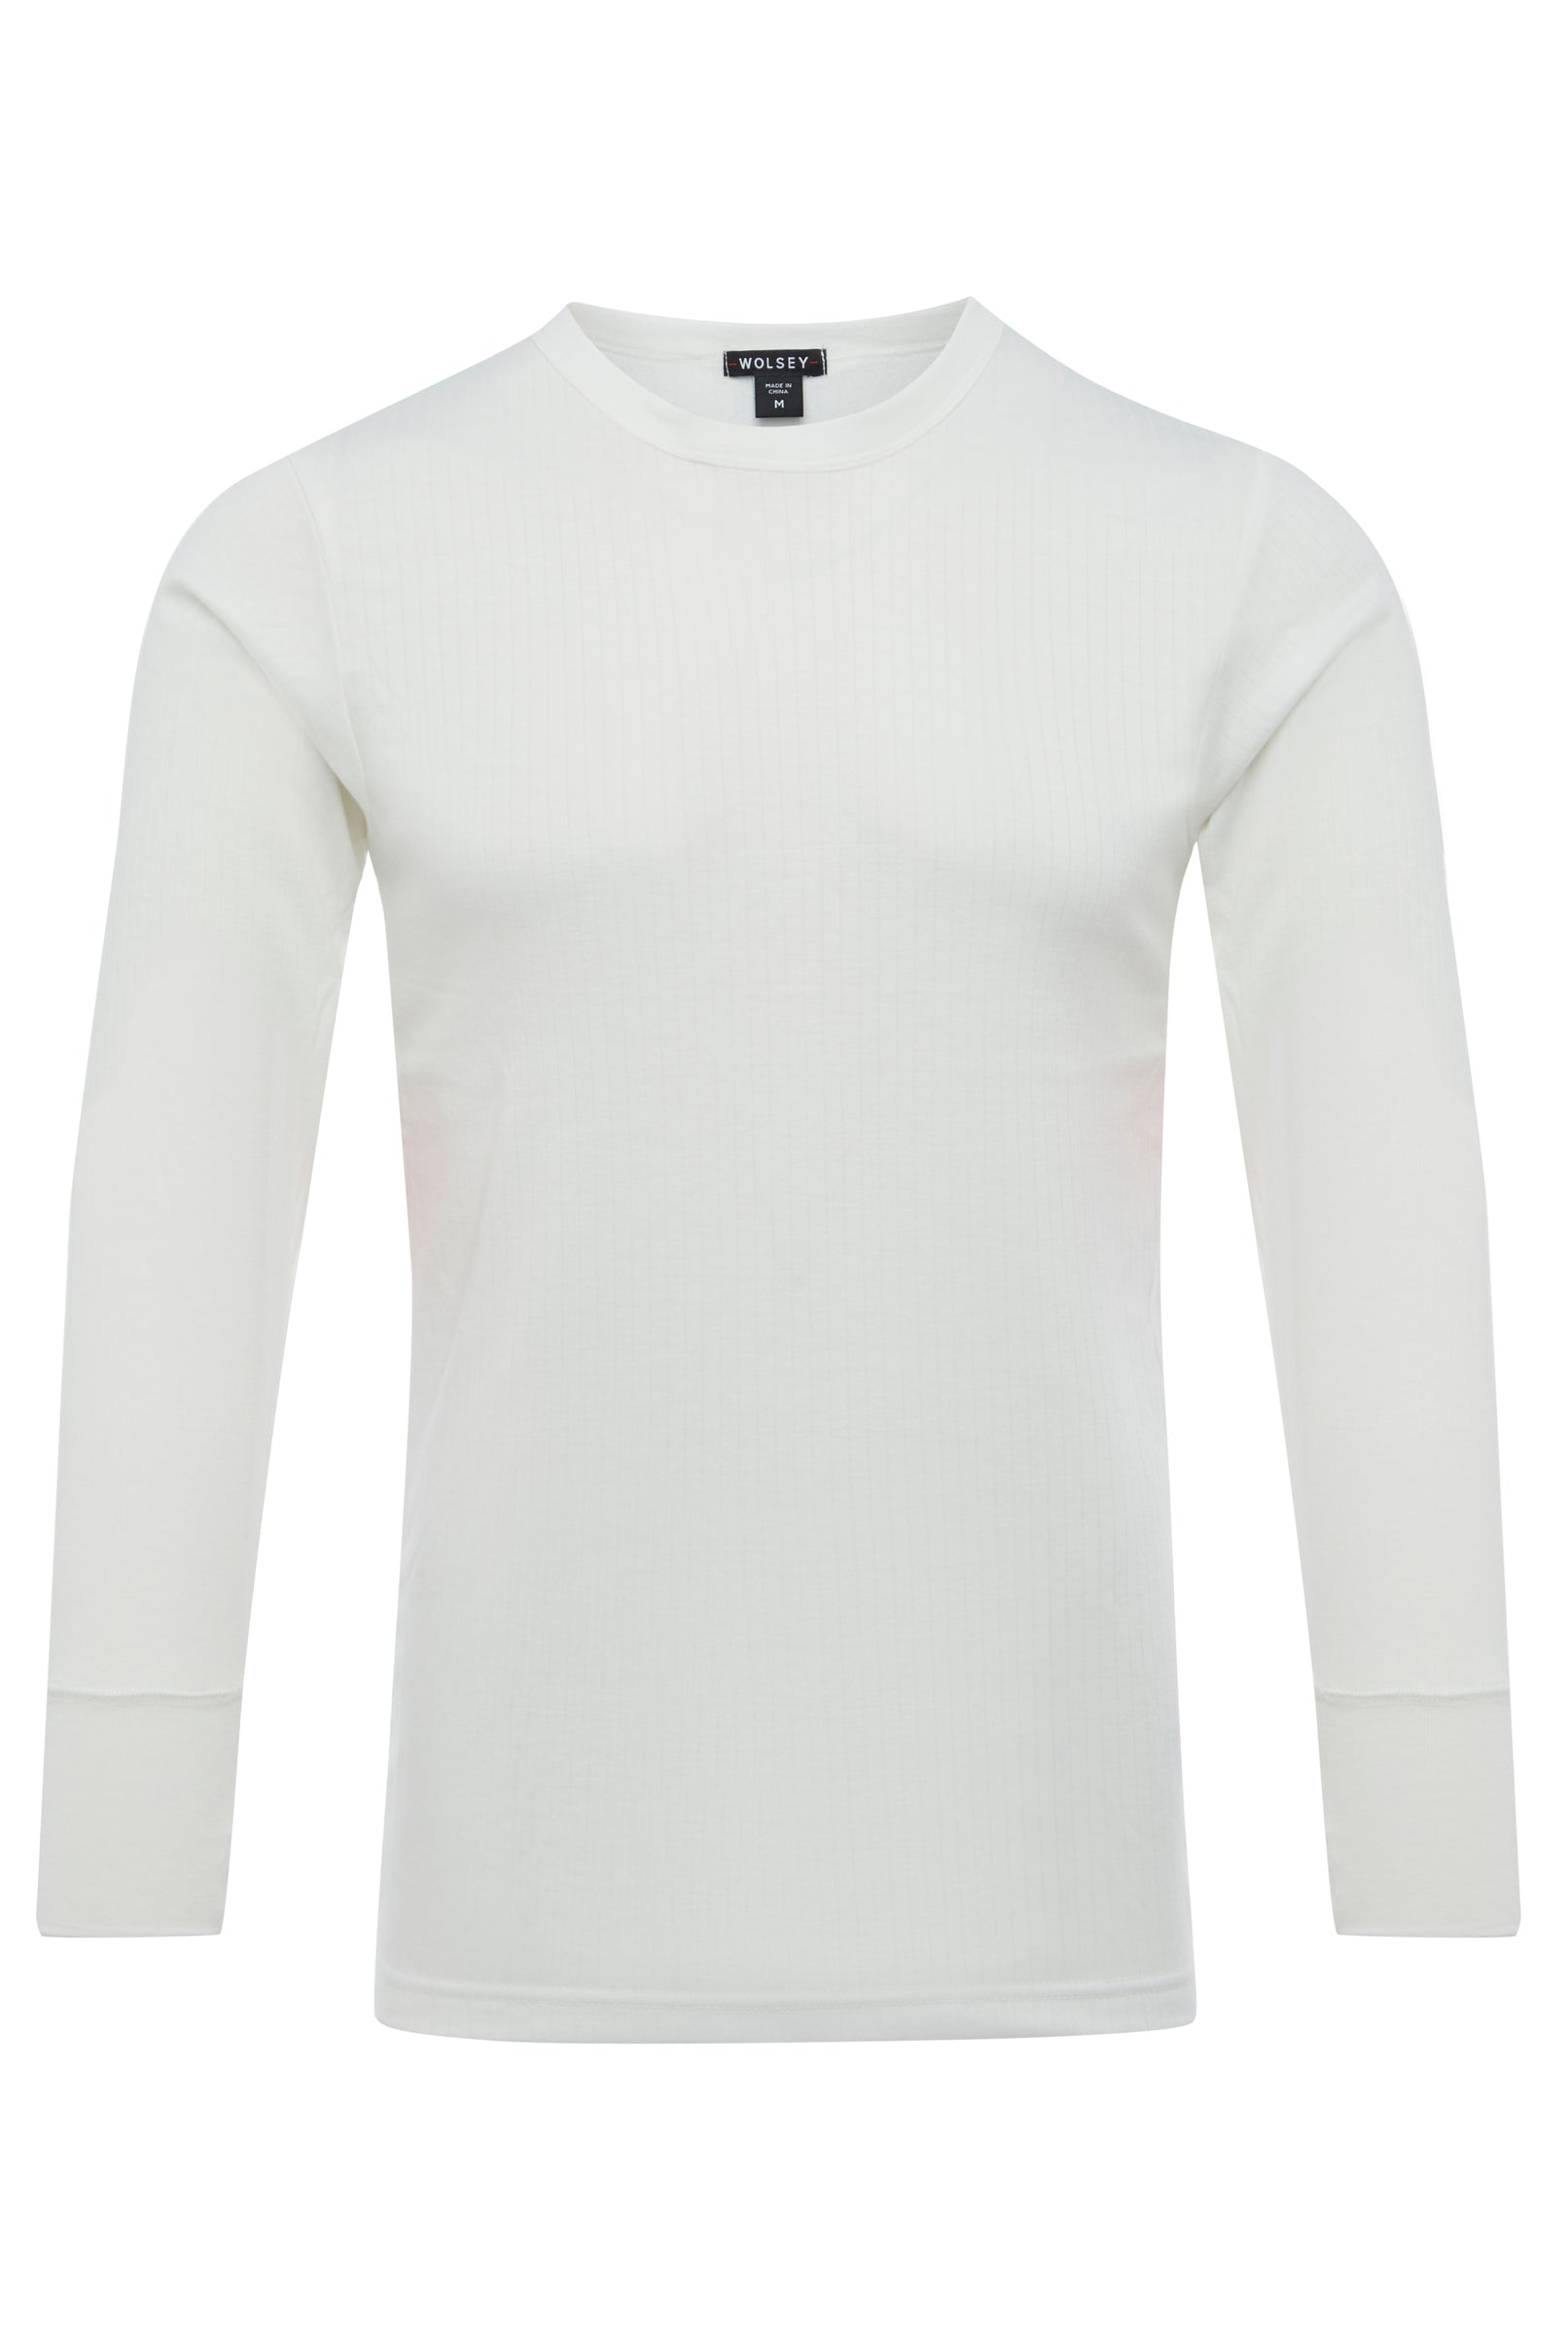 Natural Classic Thermal Long Sleeve T-Shirt [Twin Pack]